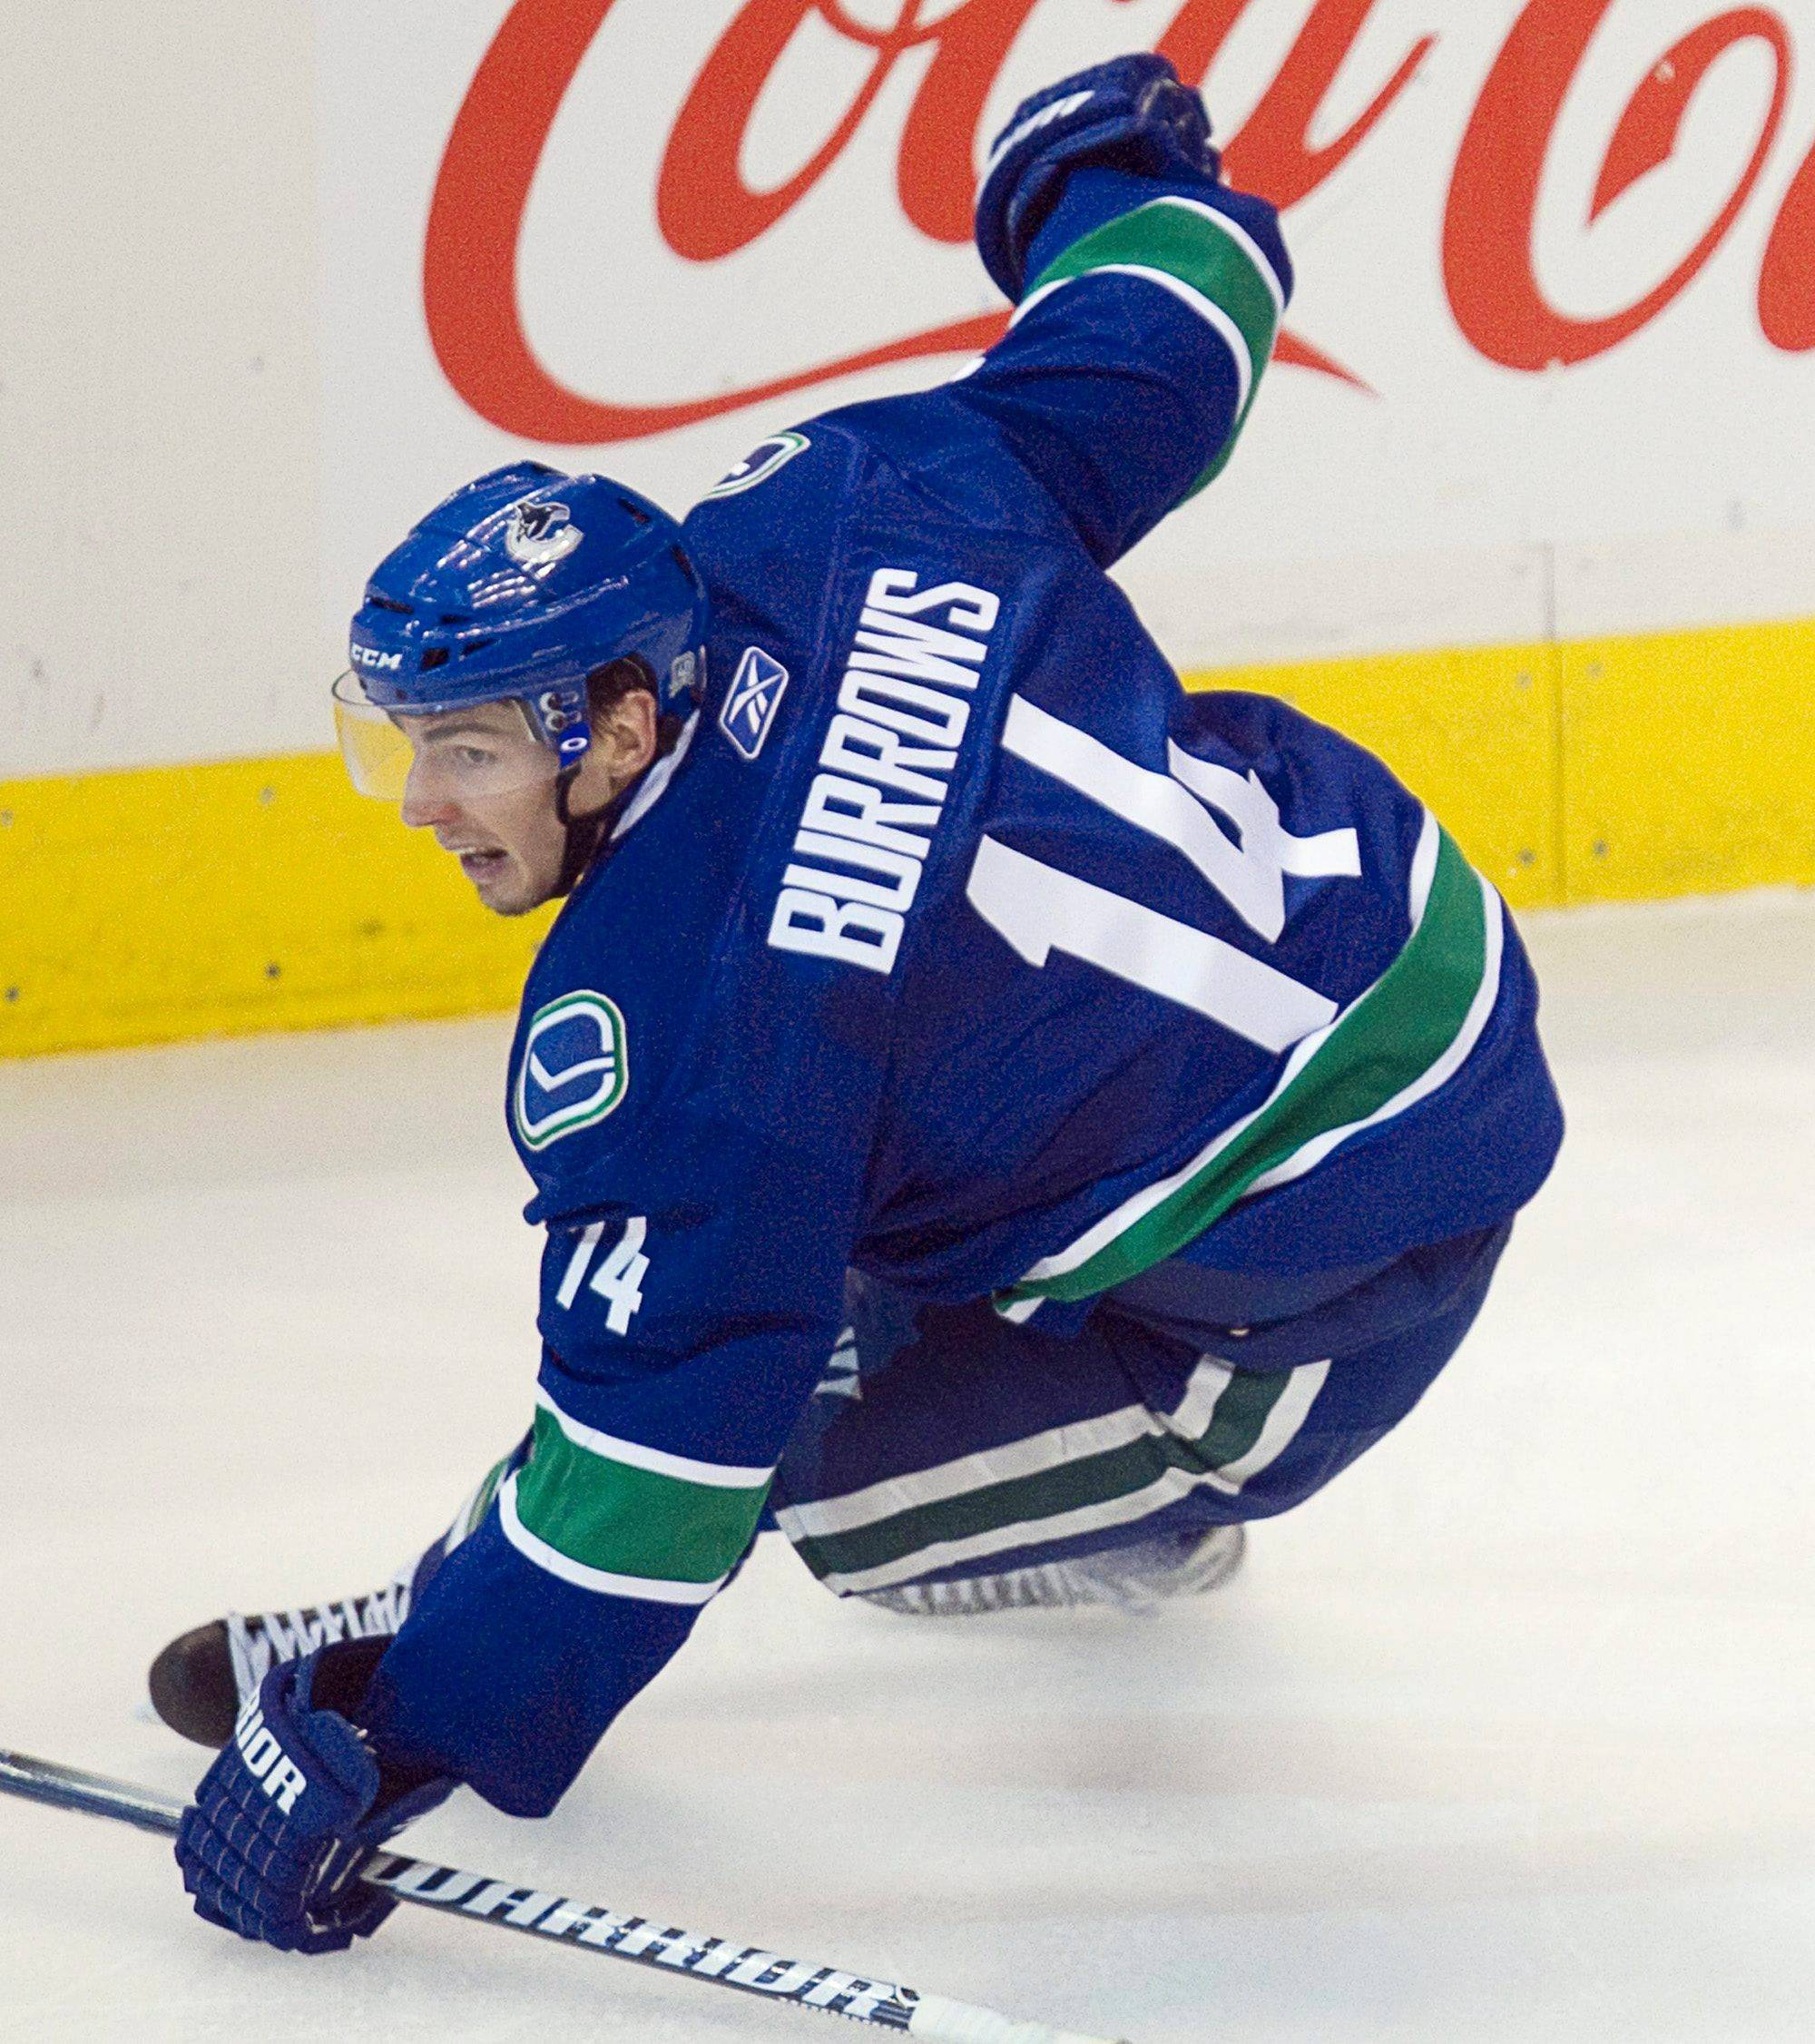 Vancouver Canucks' Alex Burrows celebrates his game winning goal against the Chicago Blackhawks during the overtime period of game 7 of an NHL Western Conference quarterfinal Stanley Cup playoff hockey series Tuesday.